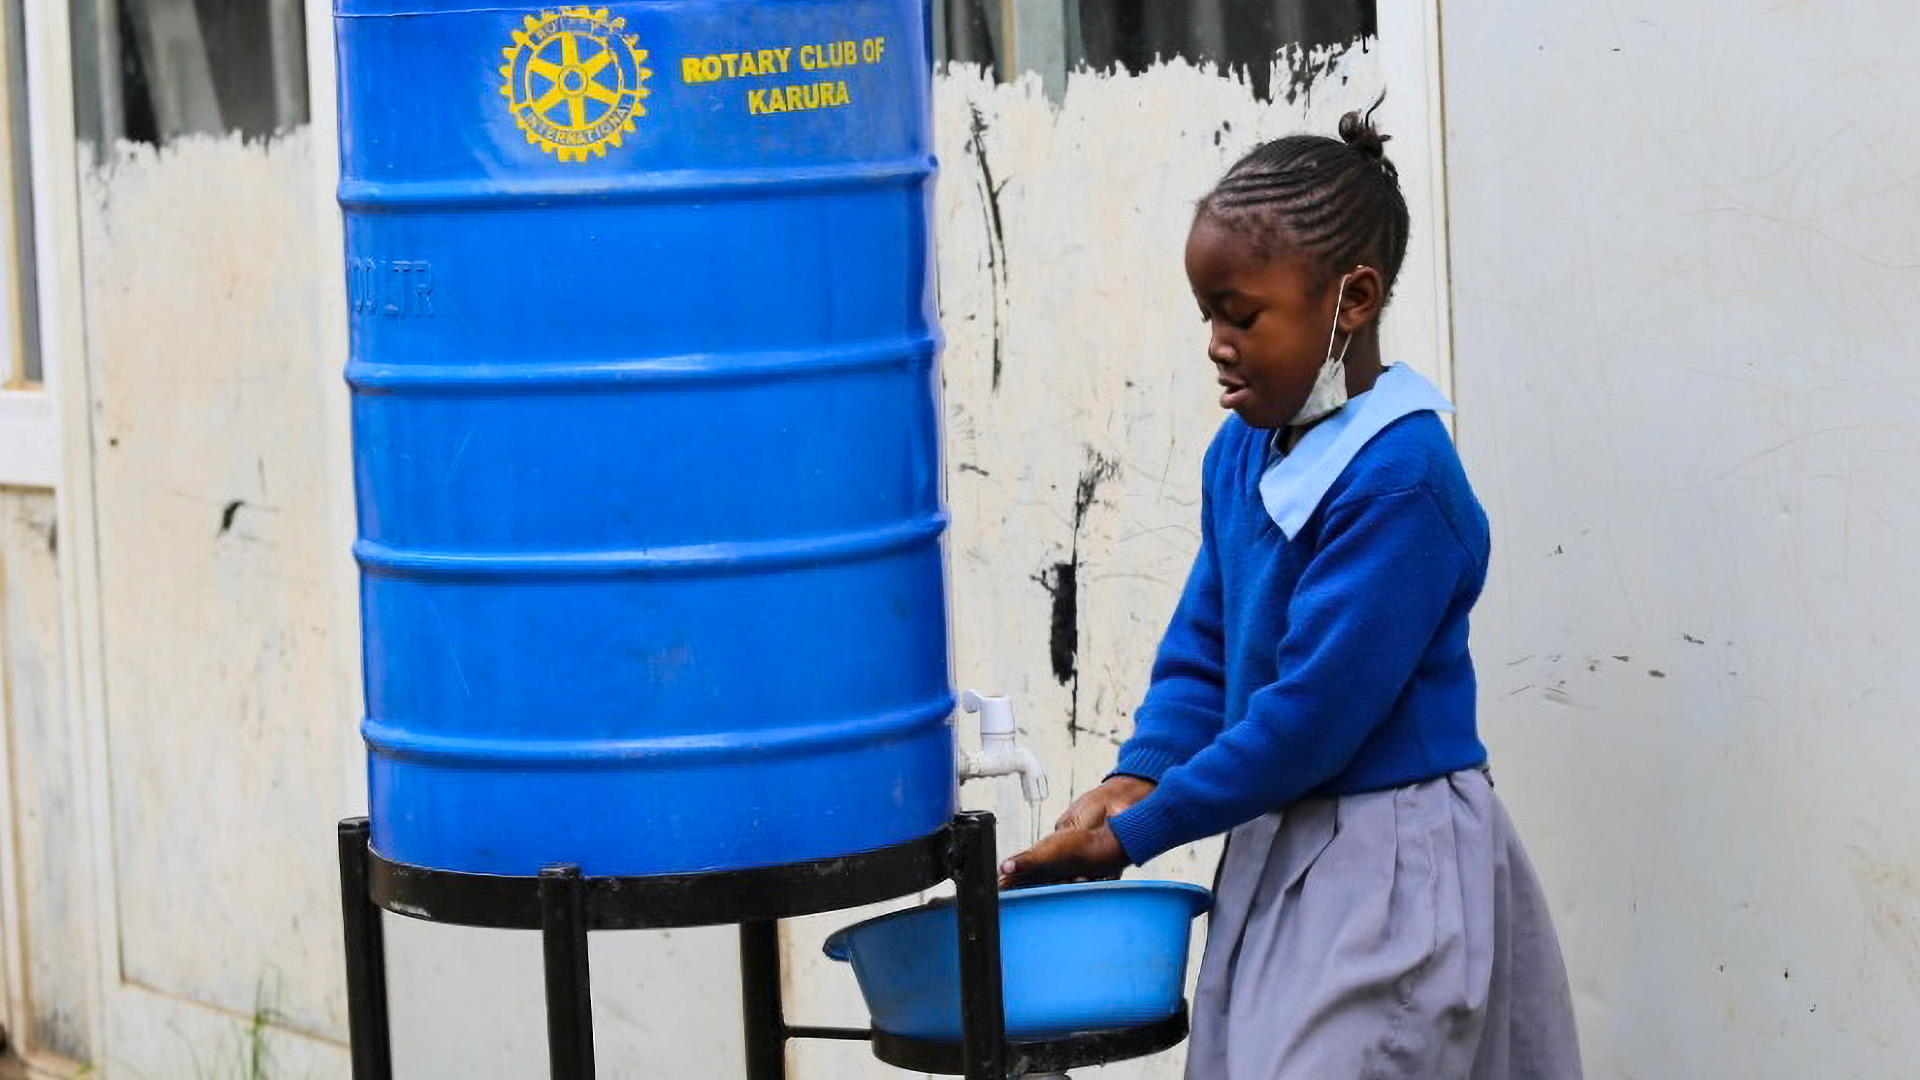 School Fees Pain For Kenyan Parents As Covid-19 Pandemic Bites